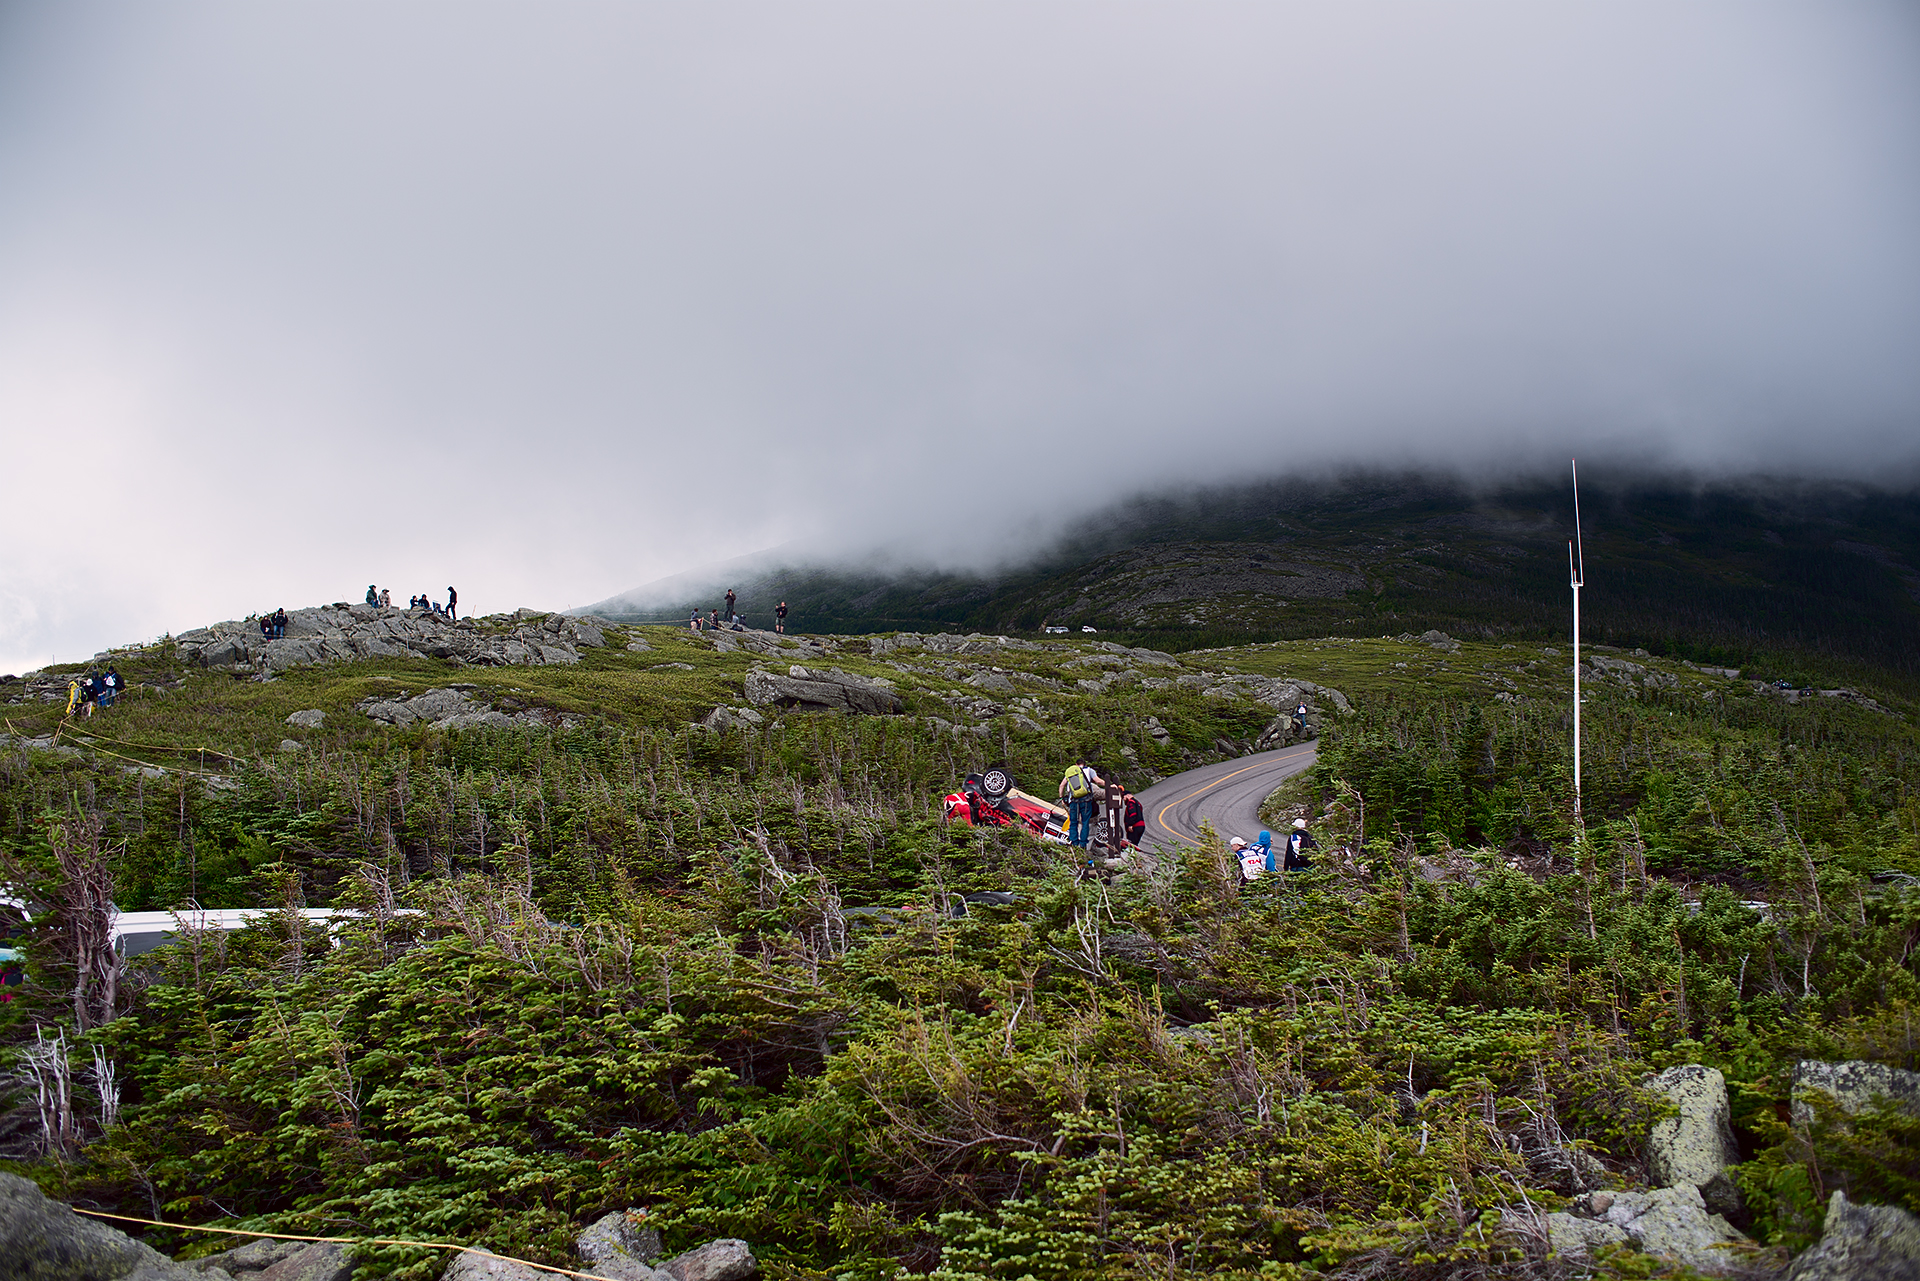 Rain clouds coming in almost to the half way point on Mount Washington during Climb to the Clouds 2017